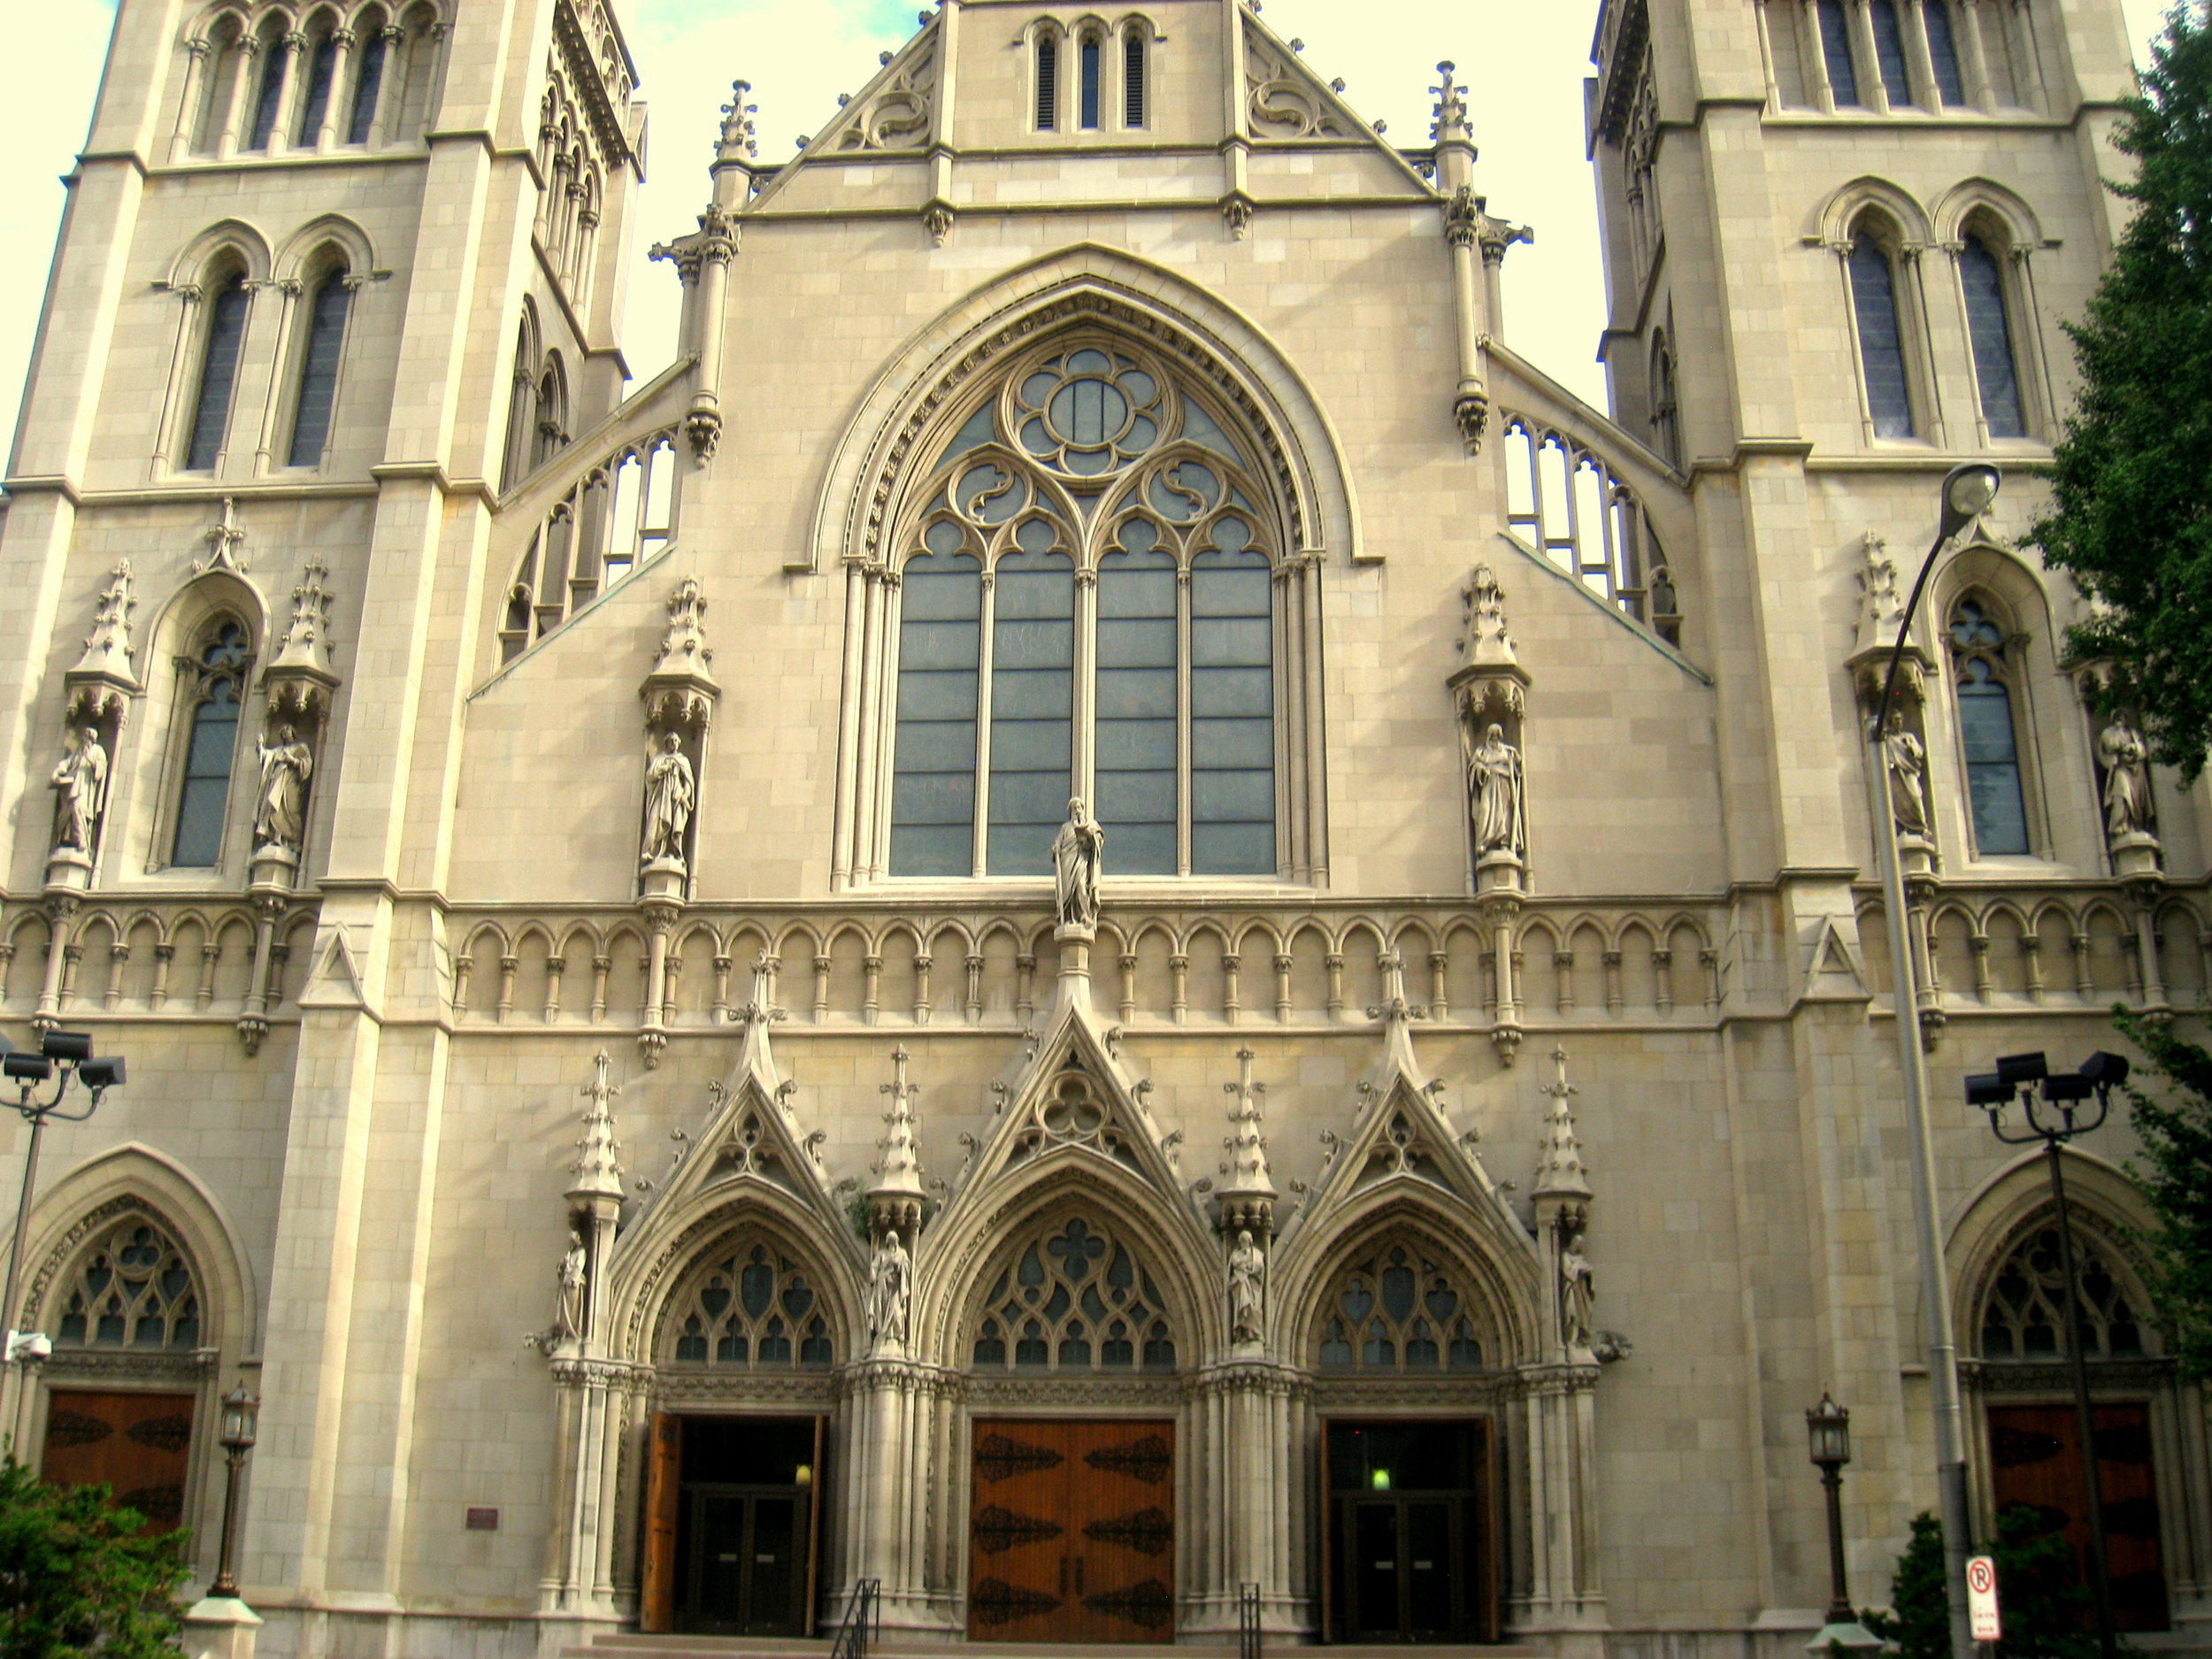 Cathedral_of_Saint_Paul_in_Pittsburgh_-_IMG_1393.JPG